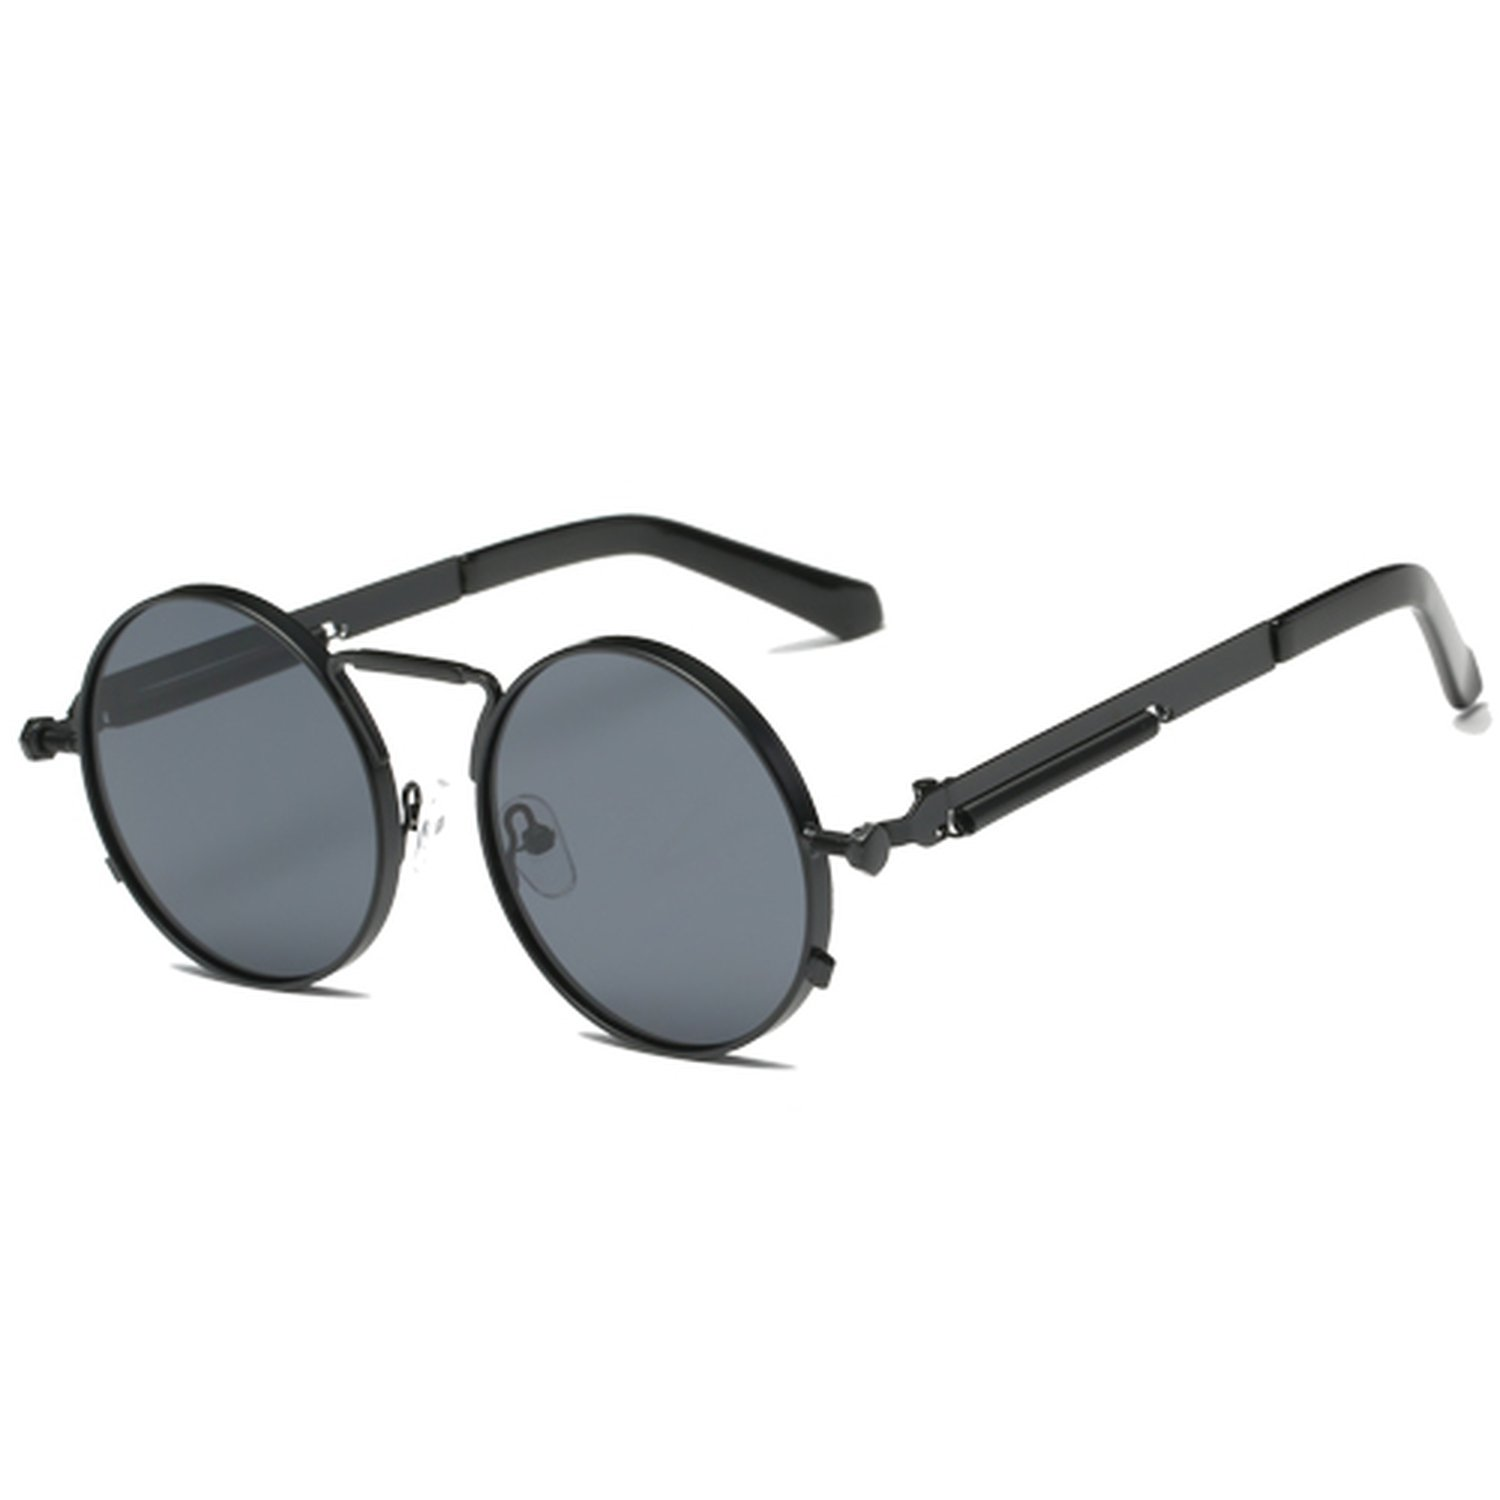 Amazon.com: Fashion Vintage Steampunk Sunglasses Brand ...